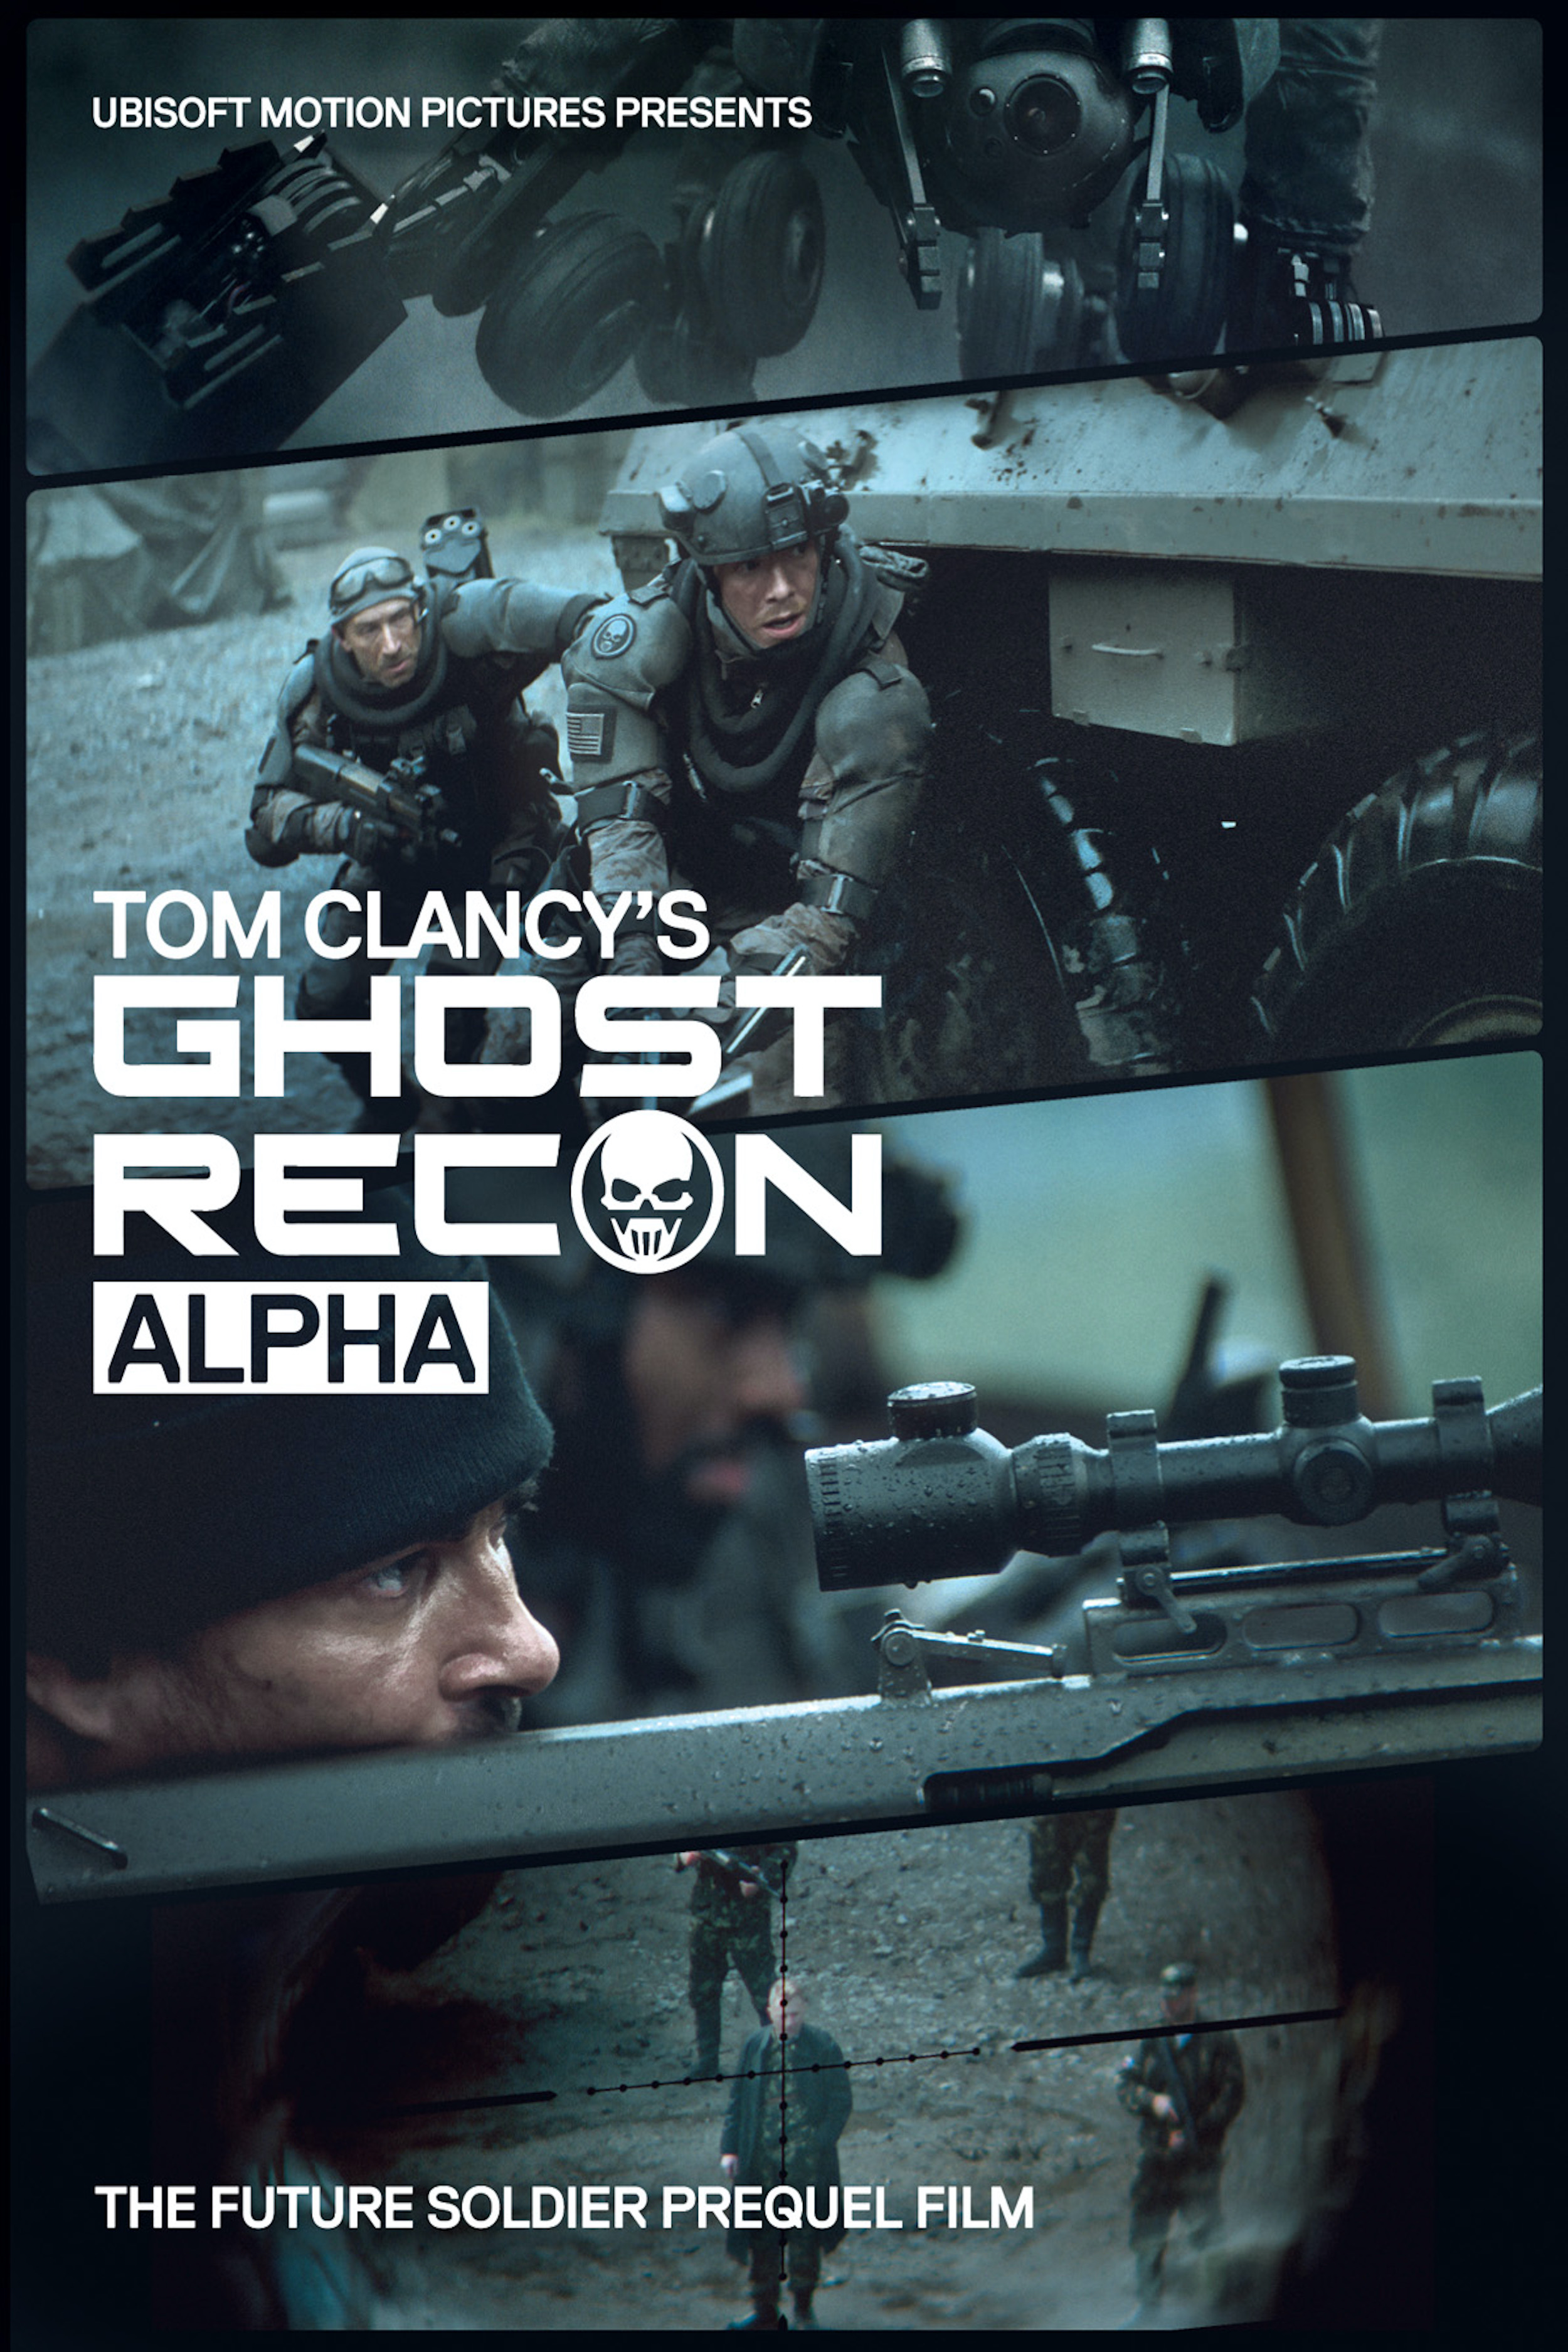 Tom Clancy's Ghost Recon Alpha poster